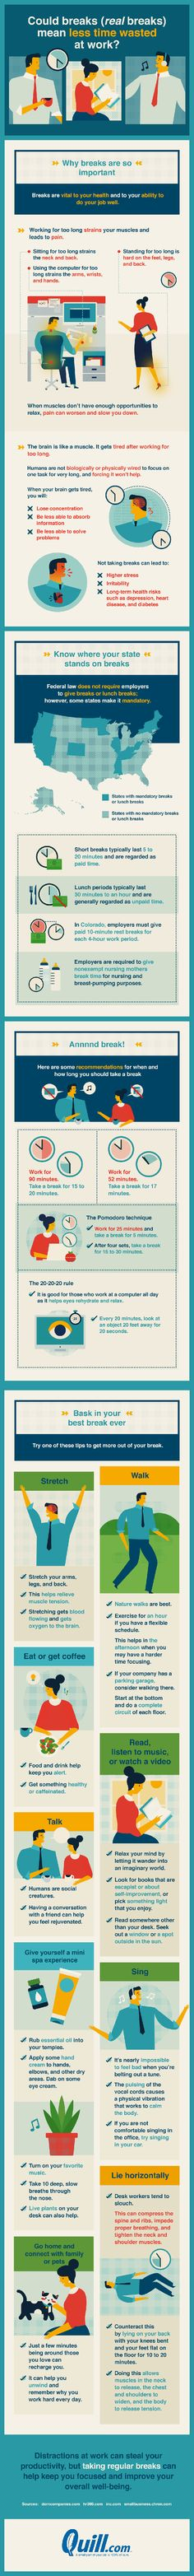 Could Breaks (real breaks) Mean Less Wasted Time At Work? #Infographic #Business